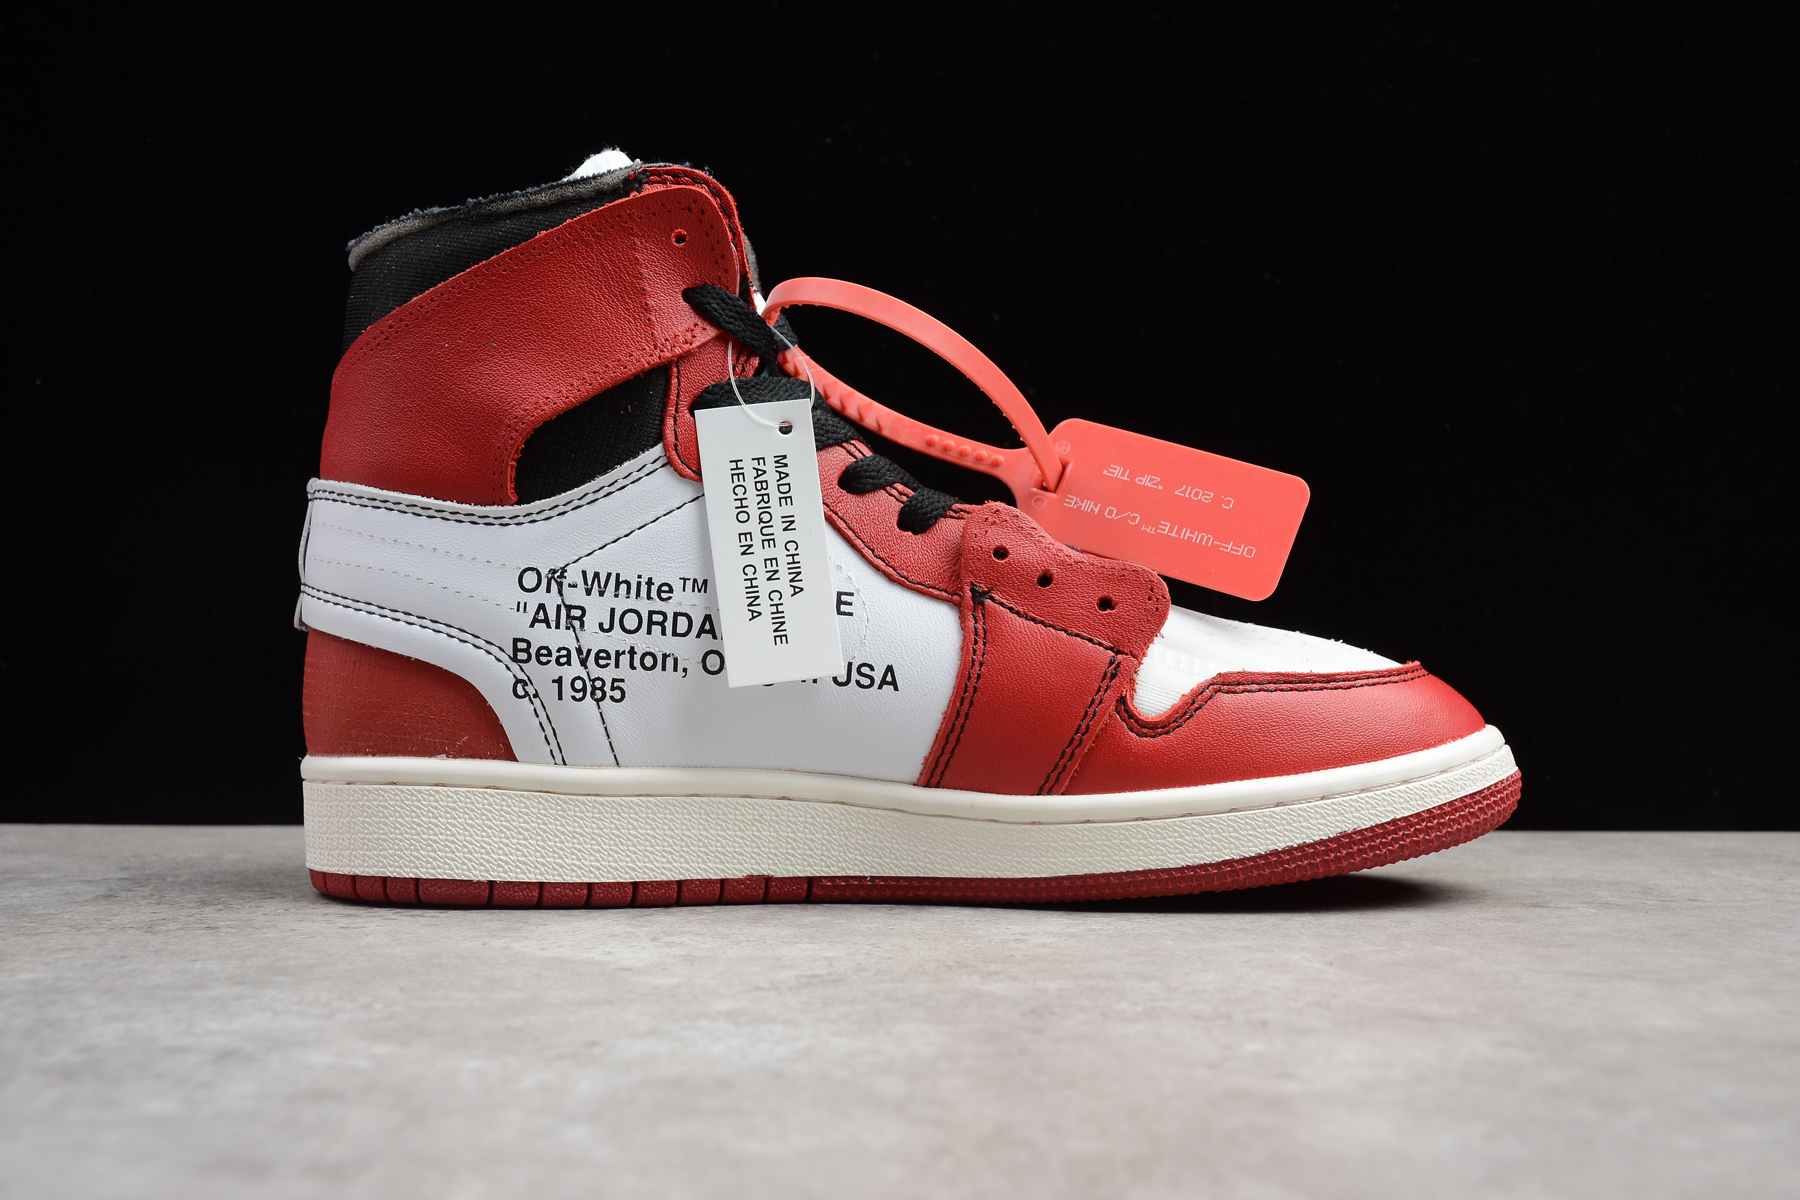 Nike Off White Collab Release Introduction and Buying